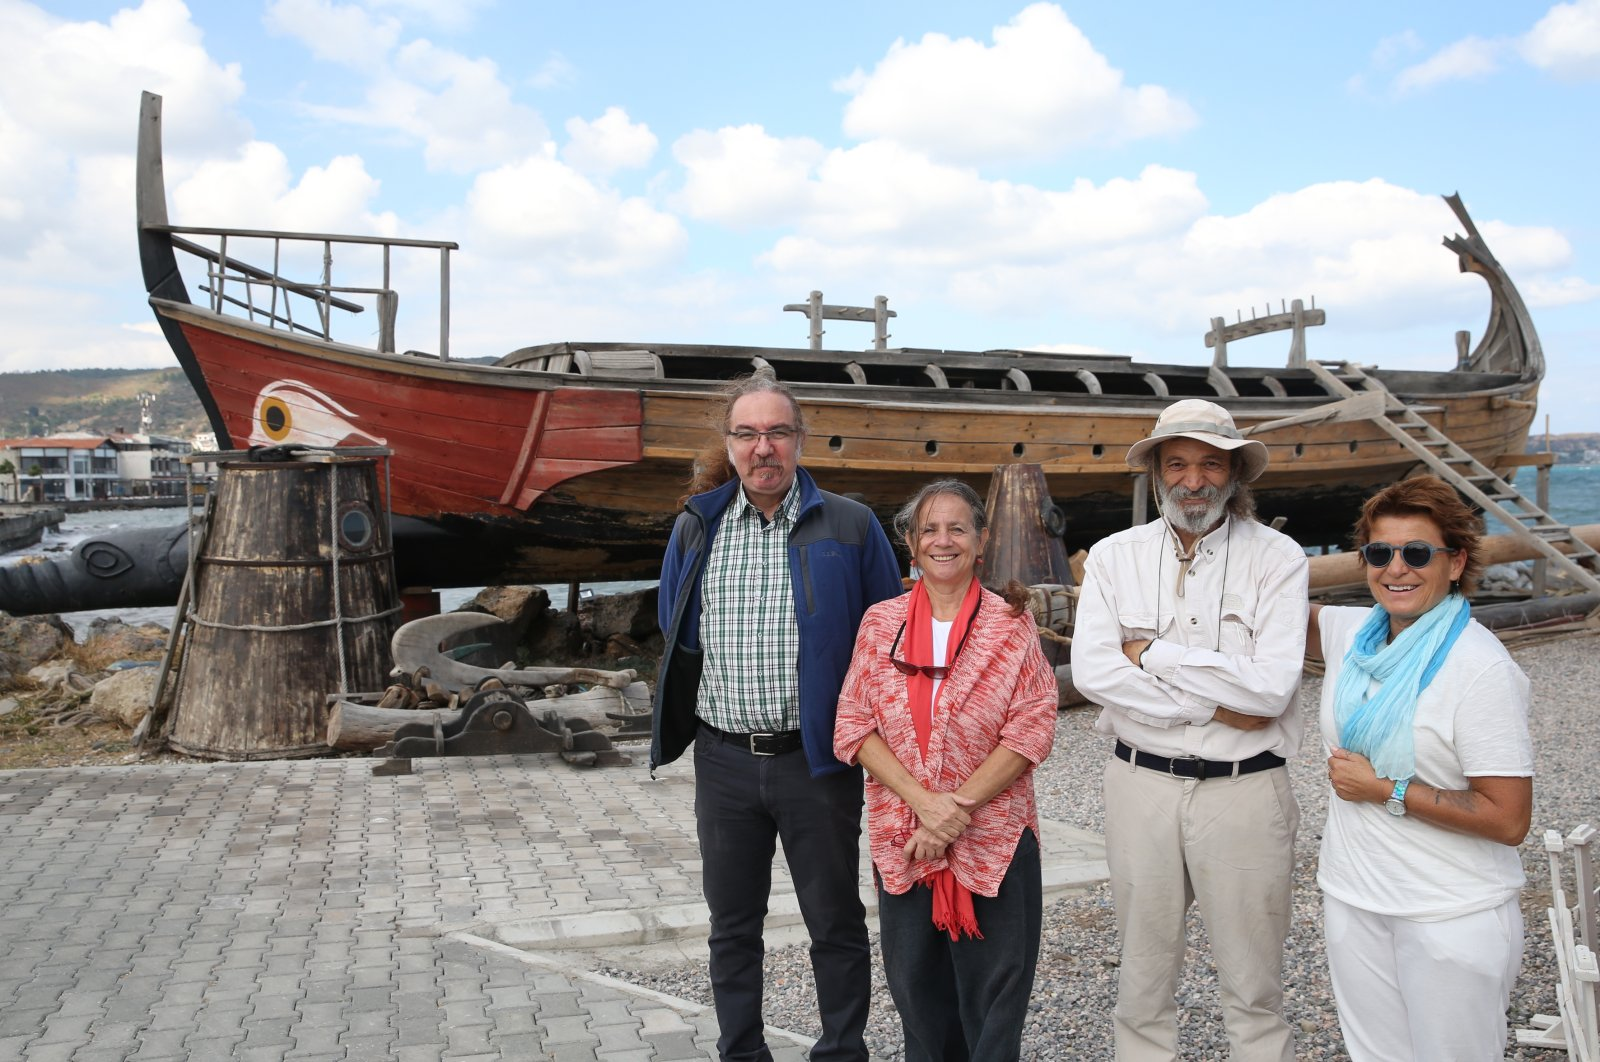 Members of the group pose in front of Kybele, a replica of an ancient boat they constructed, in Izmir, western Turkey, Sept. 25, 2021. (AA PHOTO)